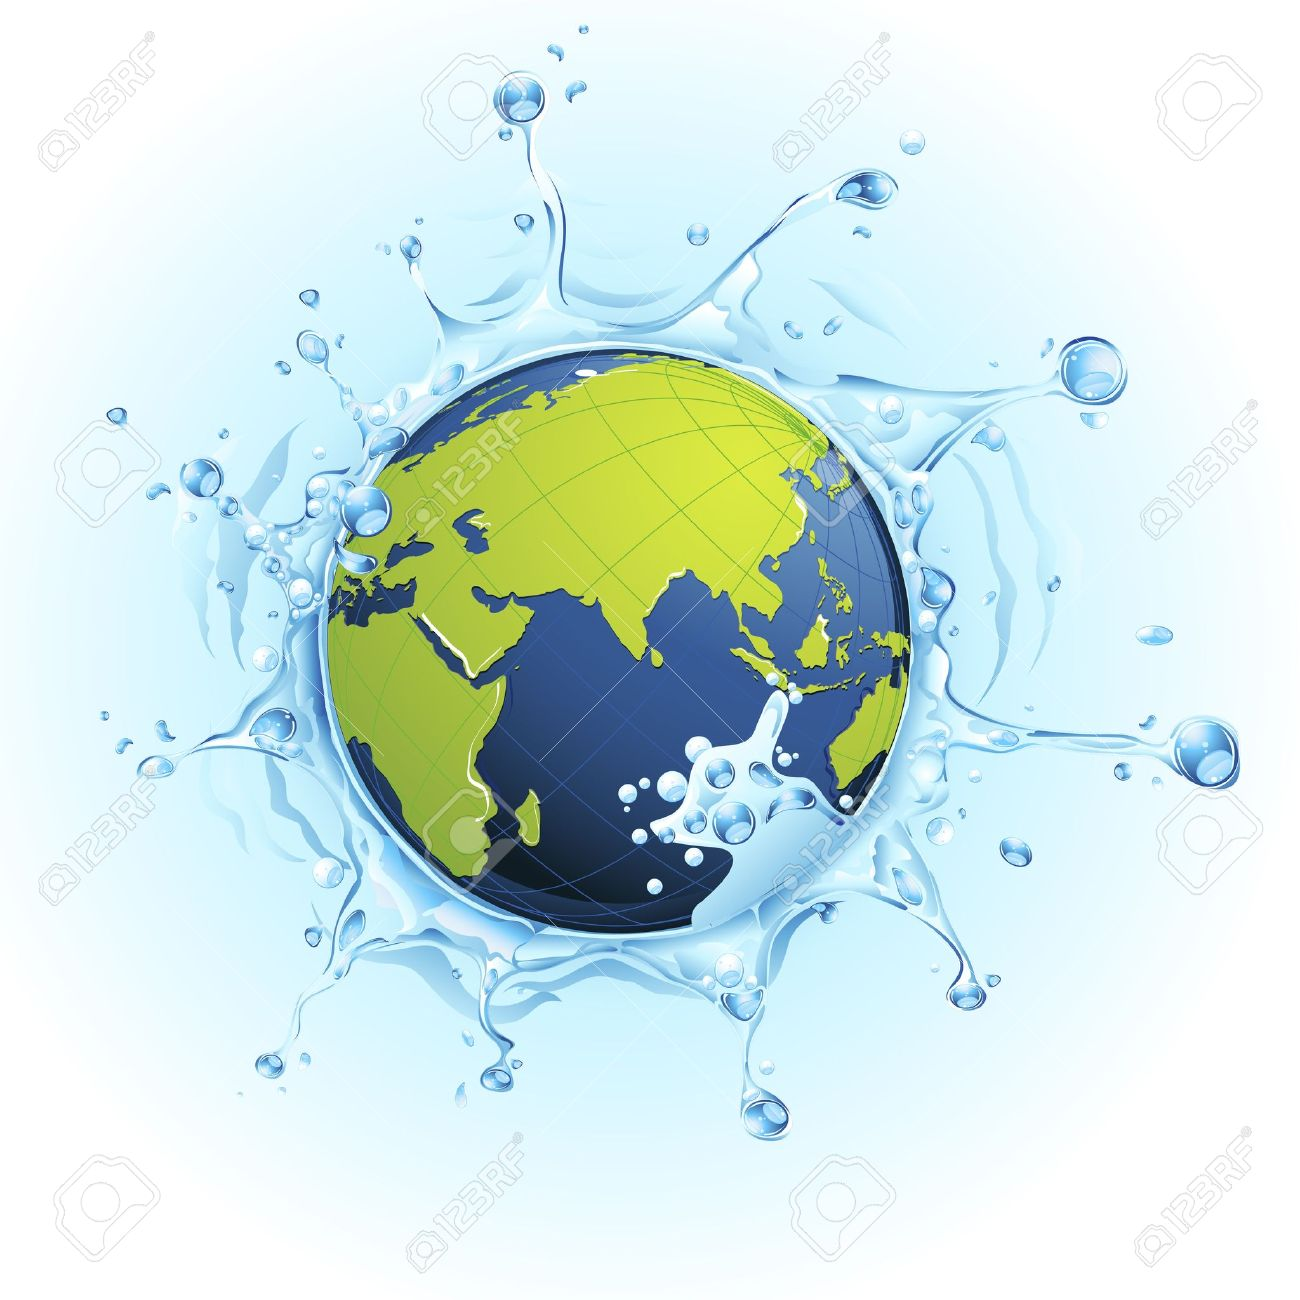 Illustration Of Earth In Splash Of Water On Watery Background.